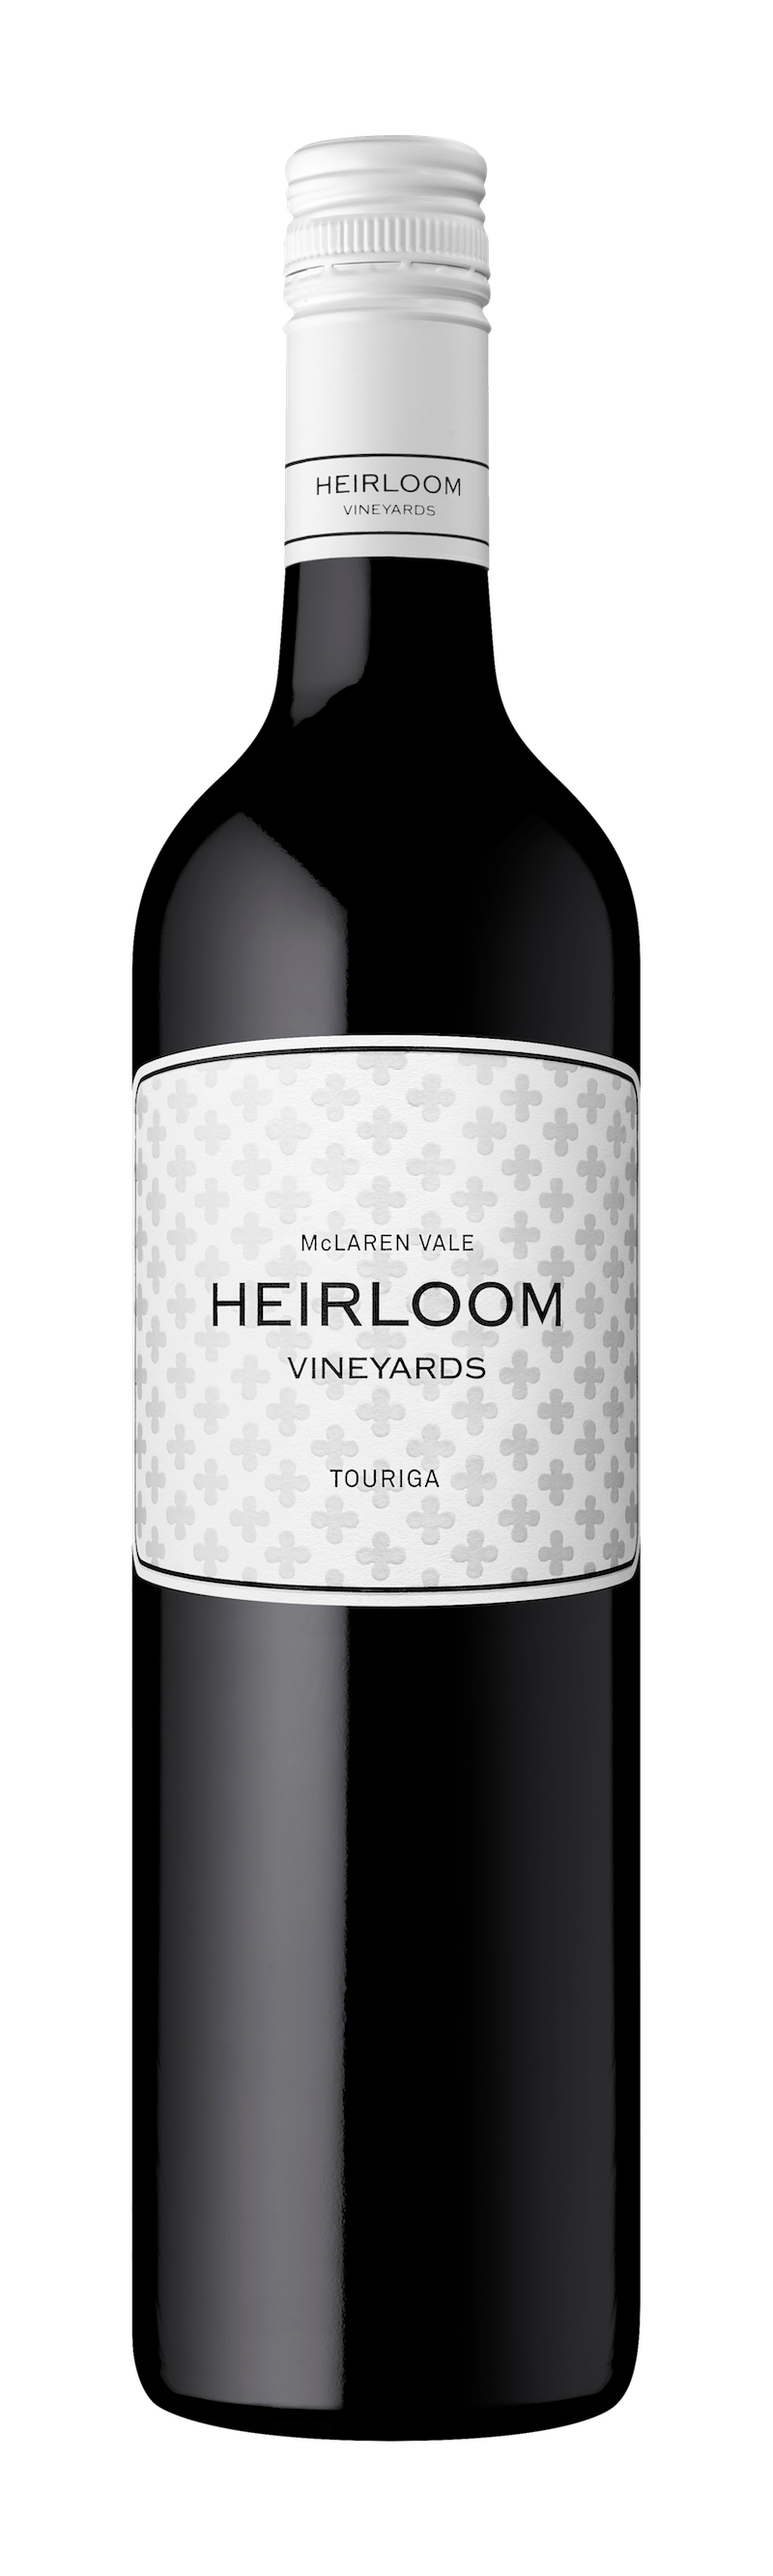 2019 Heirloom Vineyards McLaren Vale Touriga